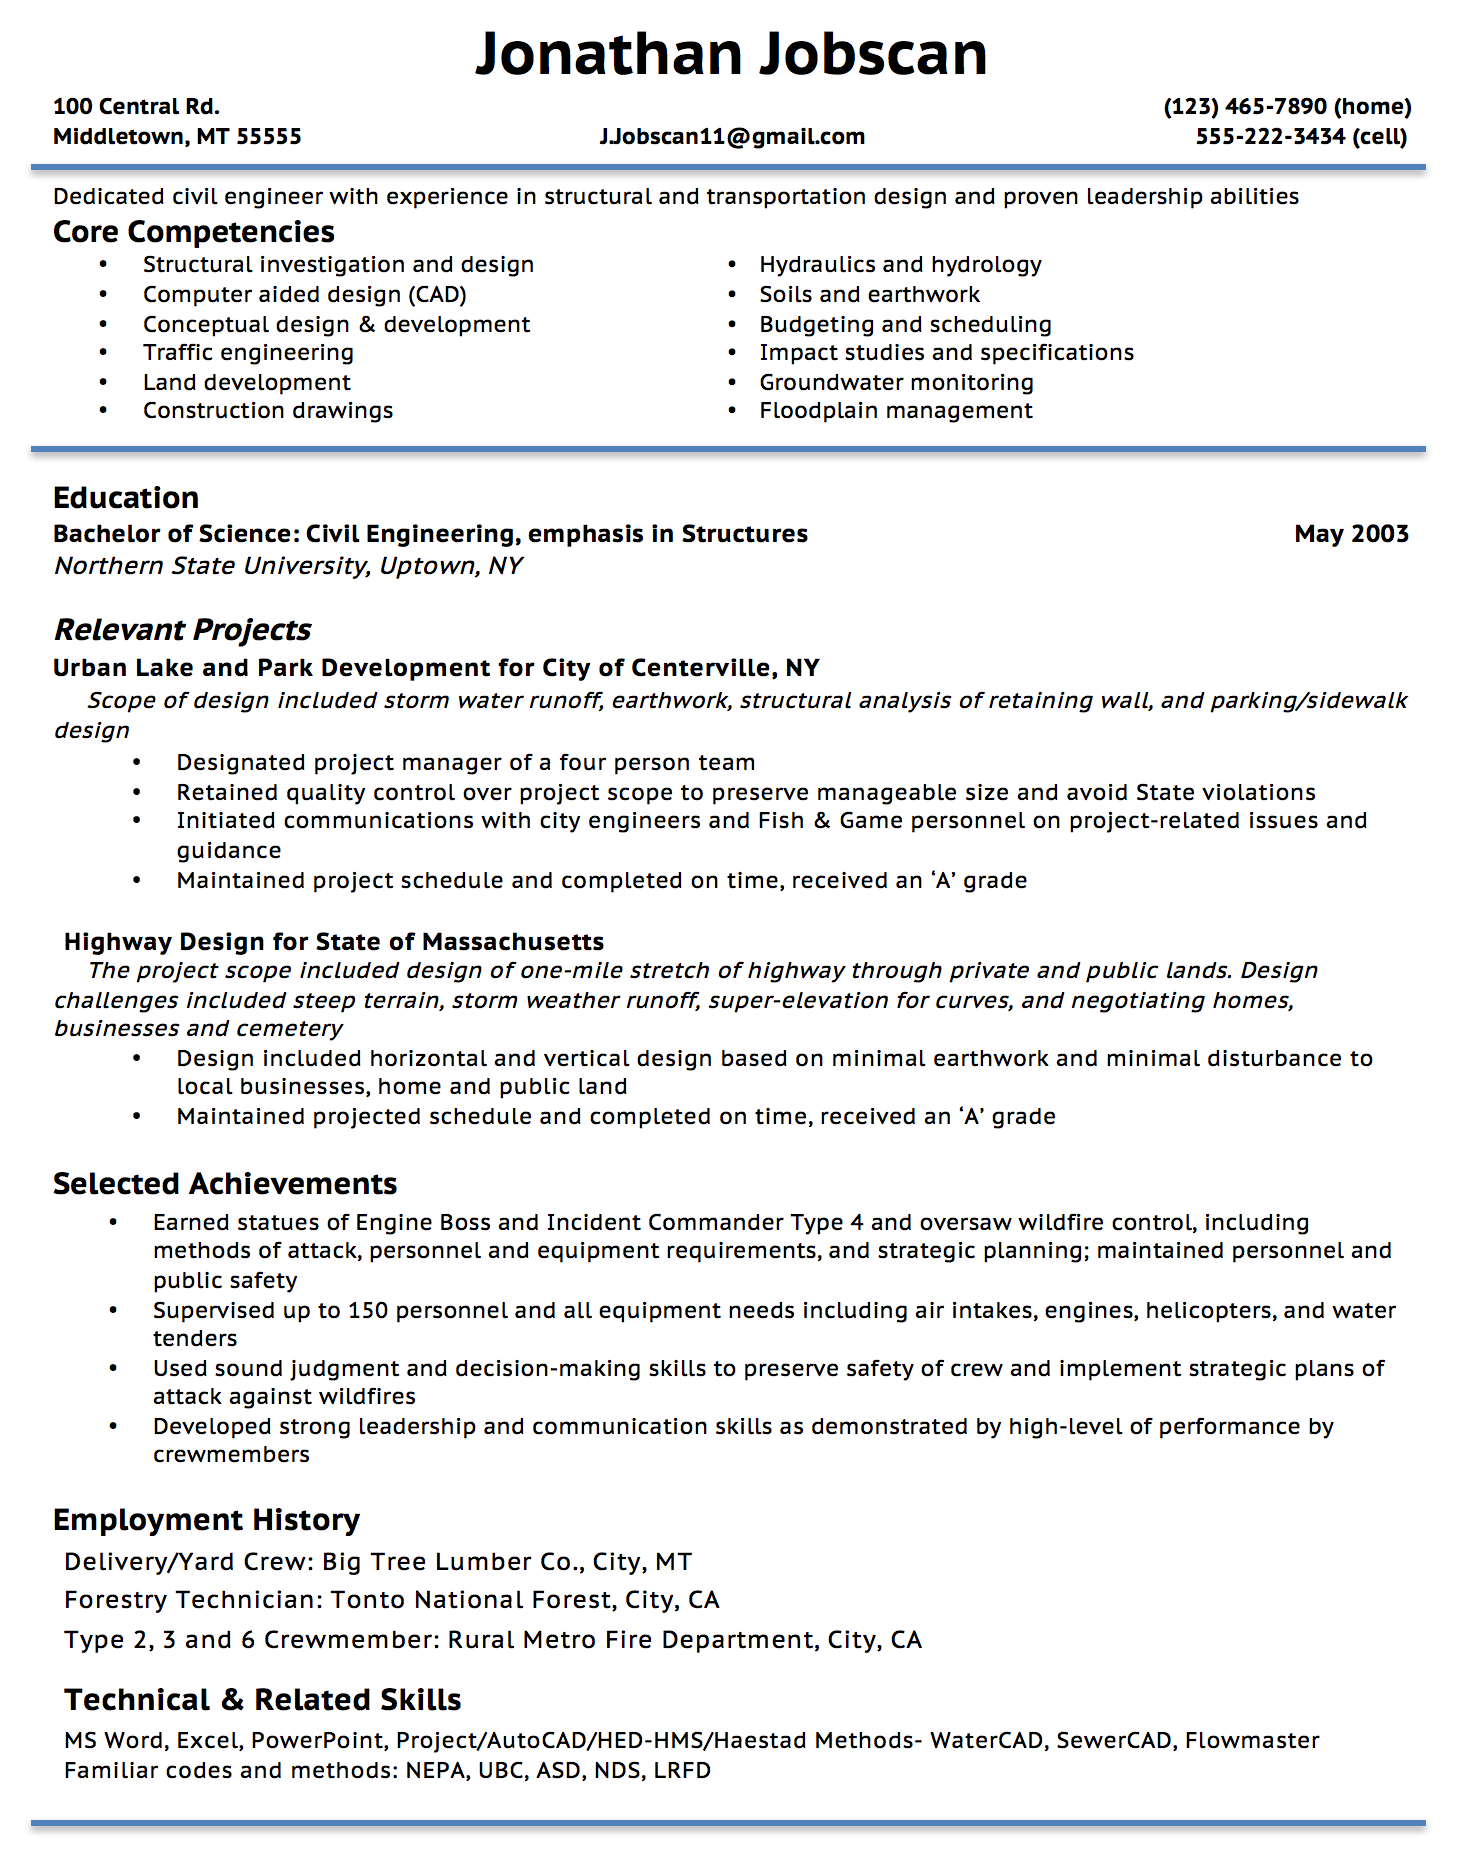 Opposenewapstandardsus  Unique Resume Writing Guide  Jobscan With Fair Example Of A Functional Resume Format With Delectable Browse Resumes Also Great Objective Statements For Resume In Addition Government Job Resume And Office Assistant Duties Resume As Well As Sales Skills For Resume Additionally High School Students Resume From Jobscanco With Opposenewapstandardsus  Fair Resume Writing Guide  Jobscan With Delectable Example Of A Functional Resume Format And Unique Browse Resumes Also Great Objective Statements For Resume In Addition Government Job Resume From Jobscanco